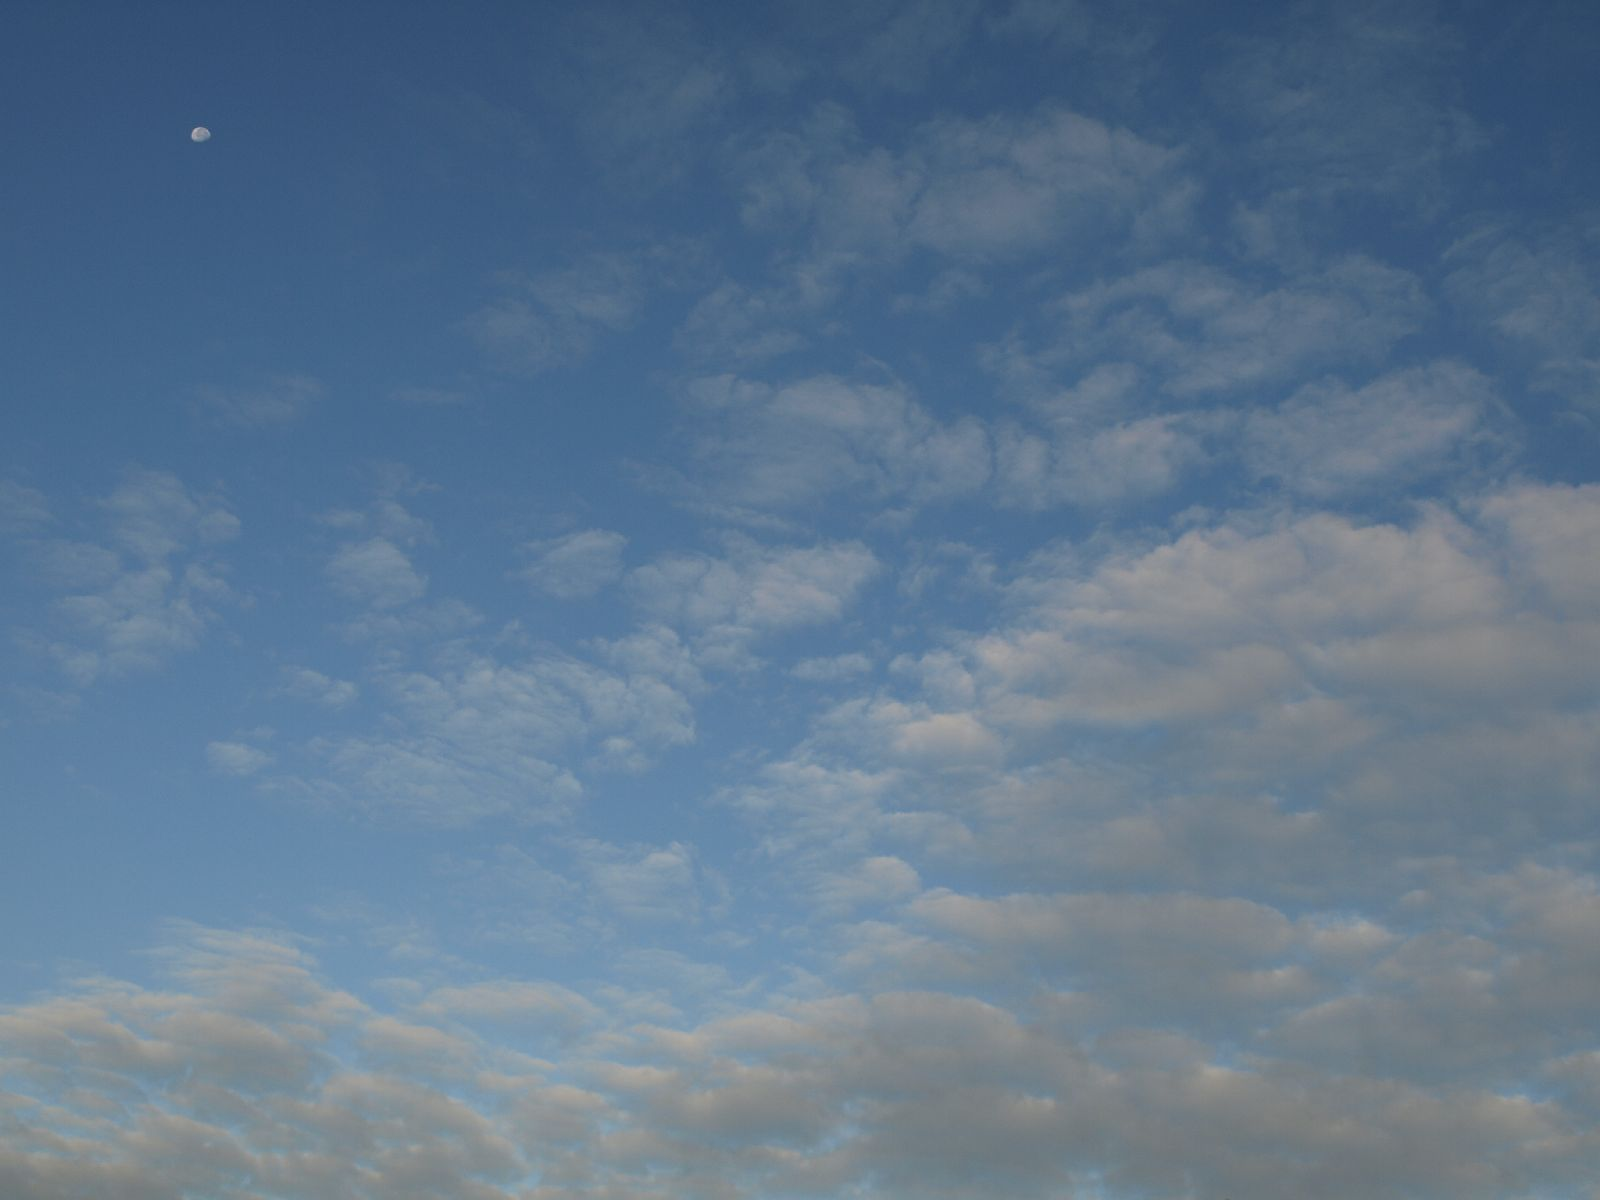 Sky_Clouds_Photo_Texture_A_P8214531